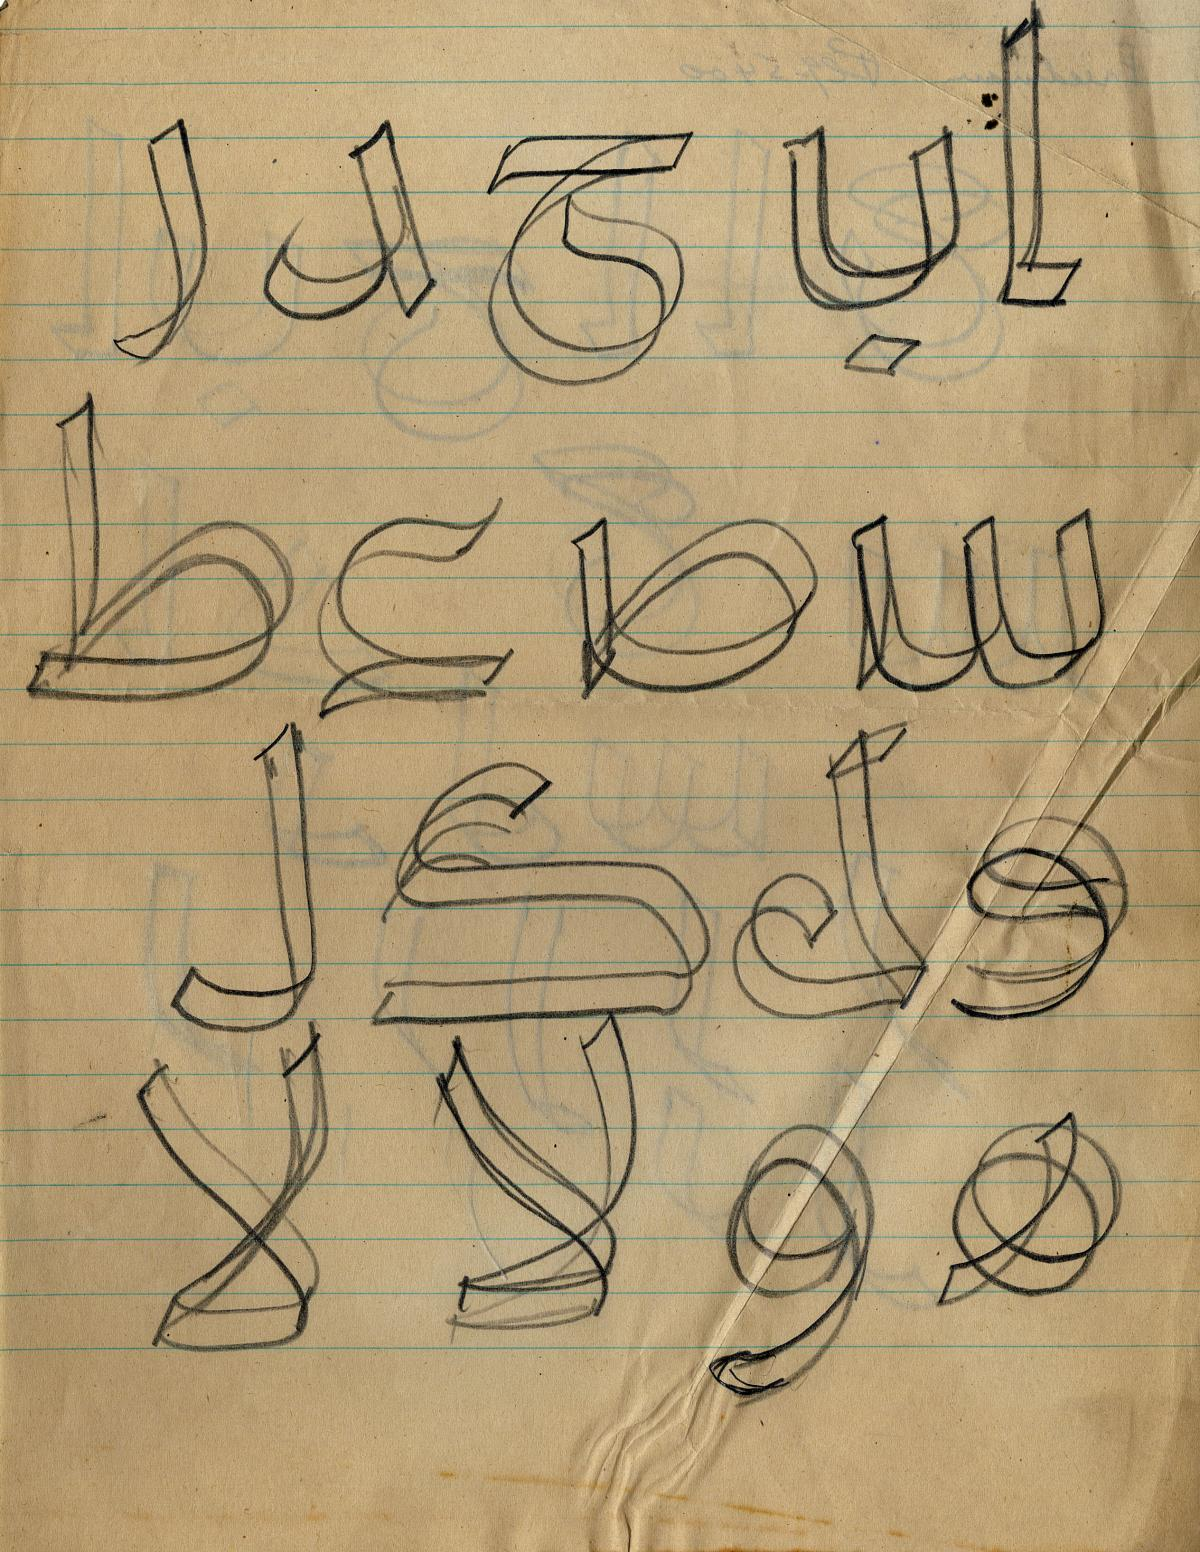 Fighting Illiteracy With Typography by Yara Khoury Nammour (Works